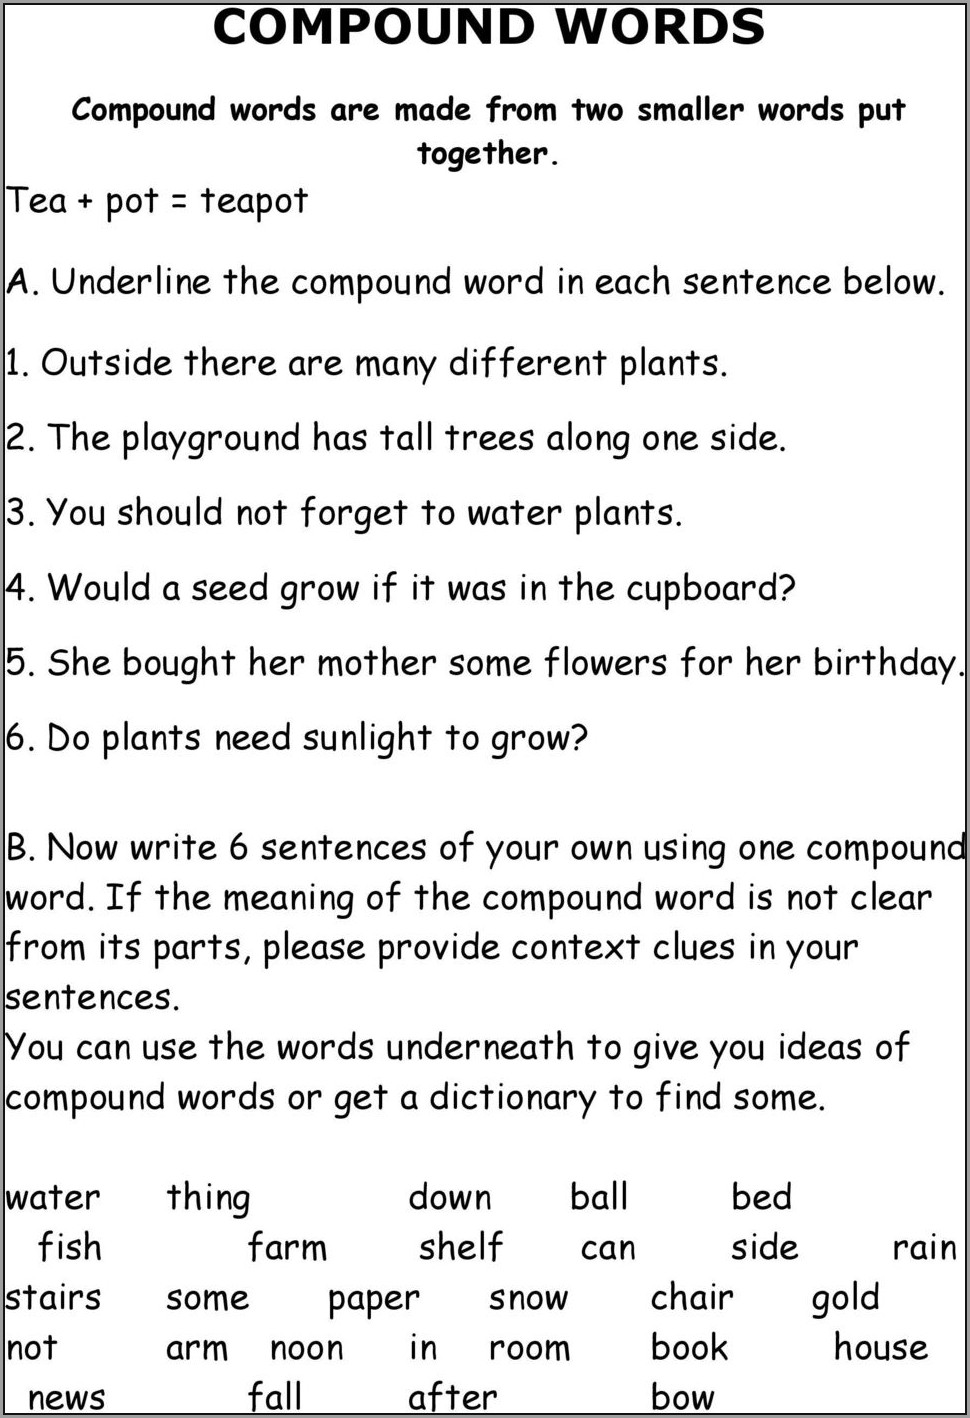 Compound Words Worksheet Middle School